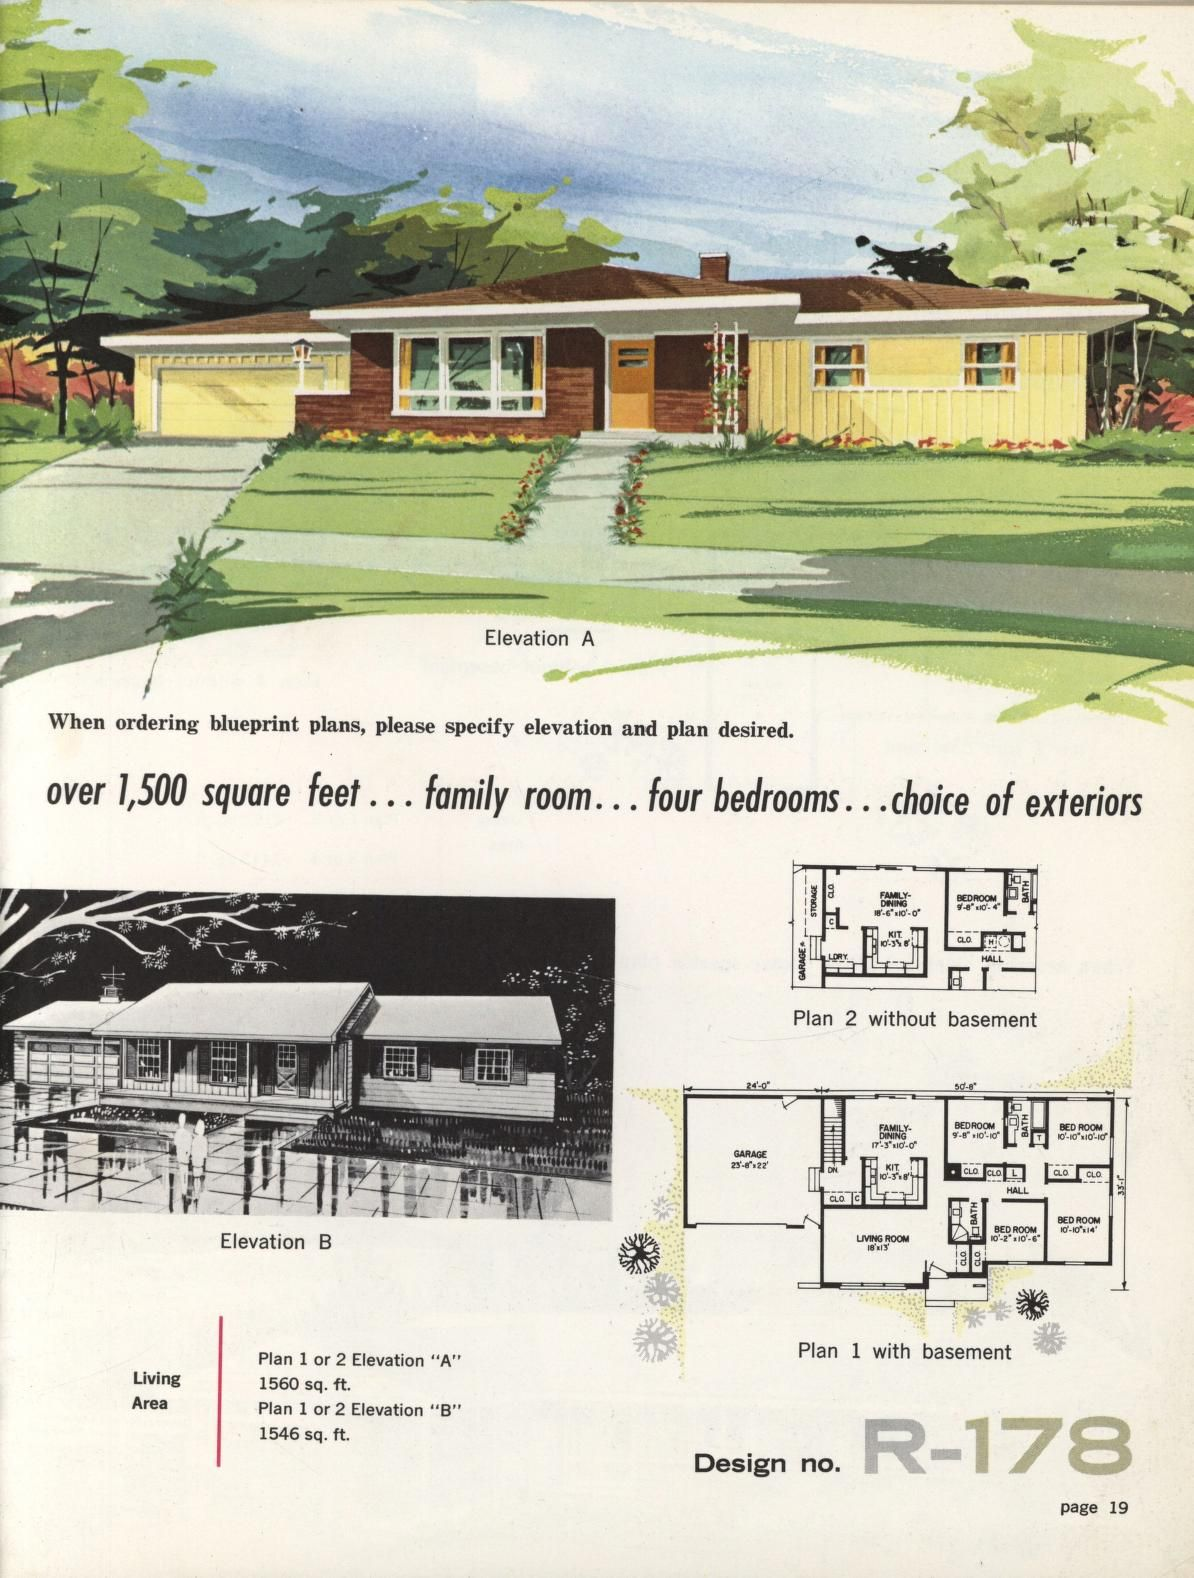 Town Amp Country Ranch Homes1962 VinTagE HOUSE PlanS